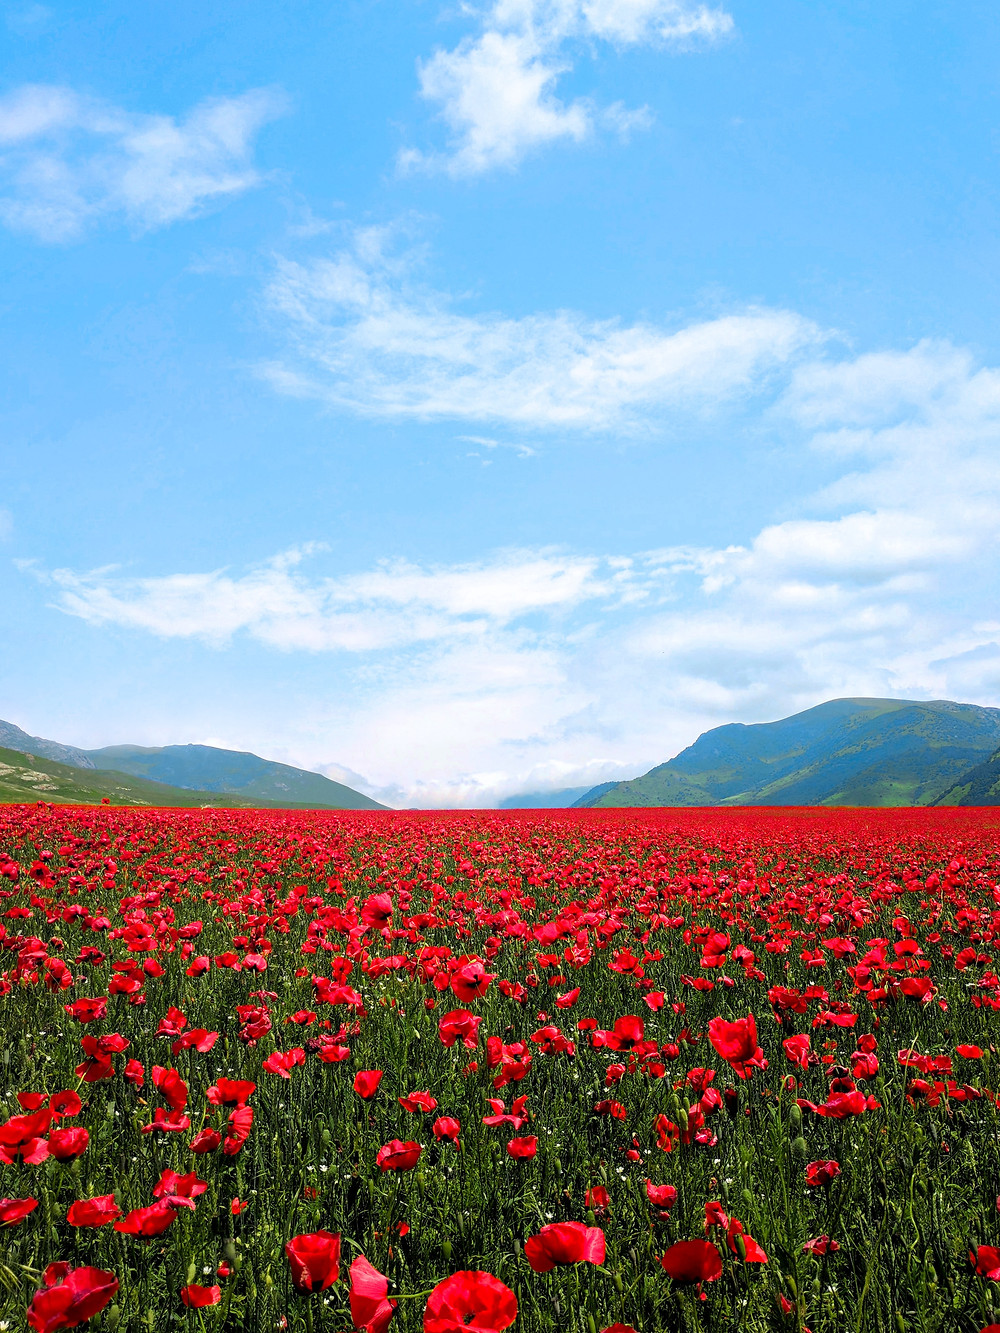 Flower field and mountains